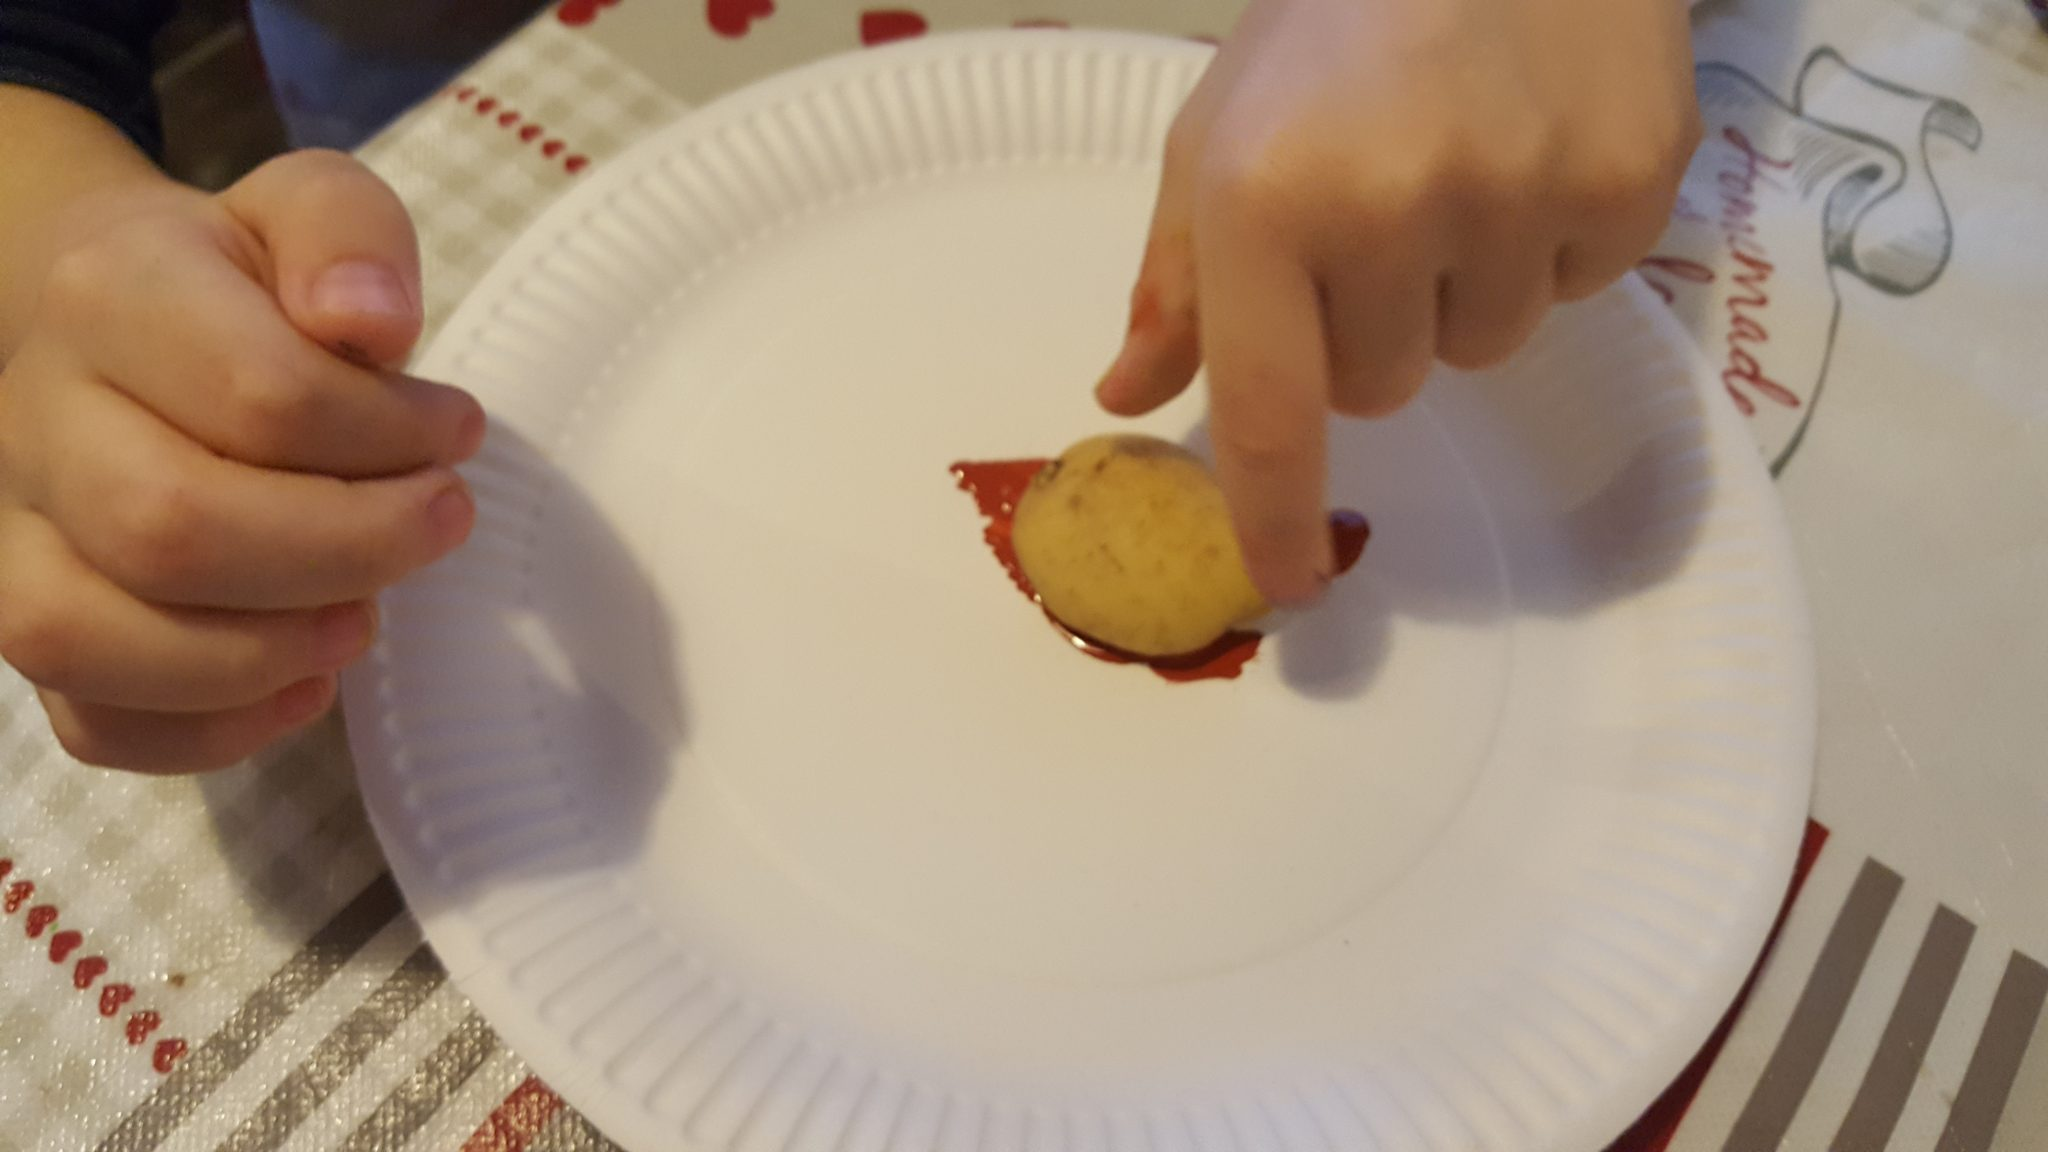 You can use larger potatoes for smaller children. Alternativley you can also let your older children cut the shapes.